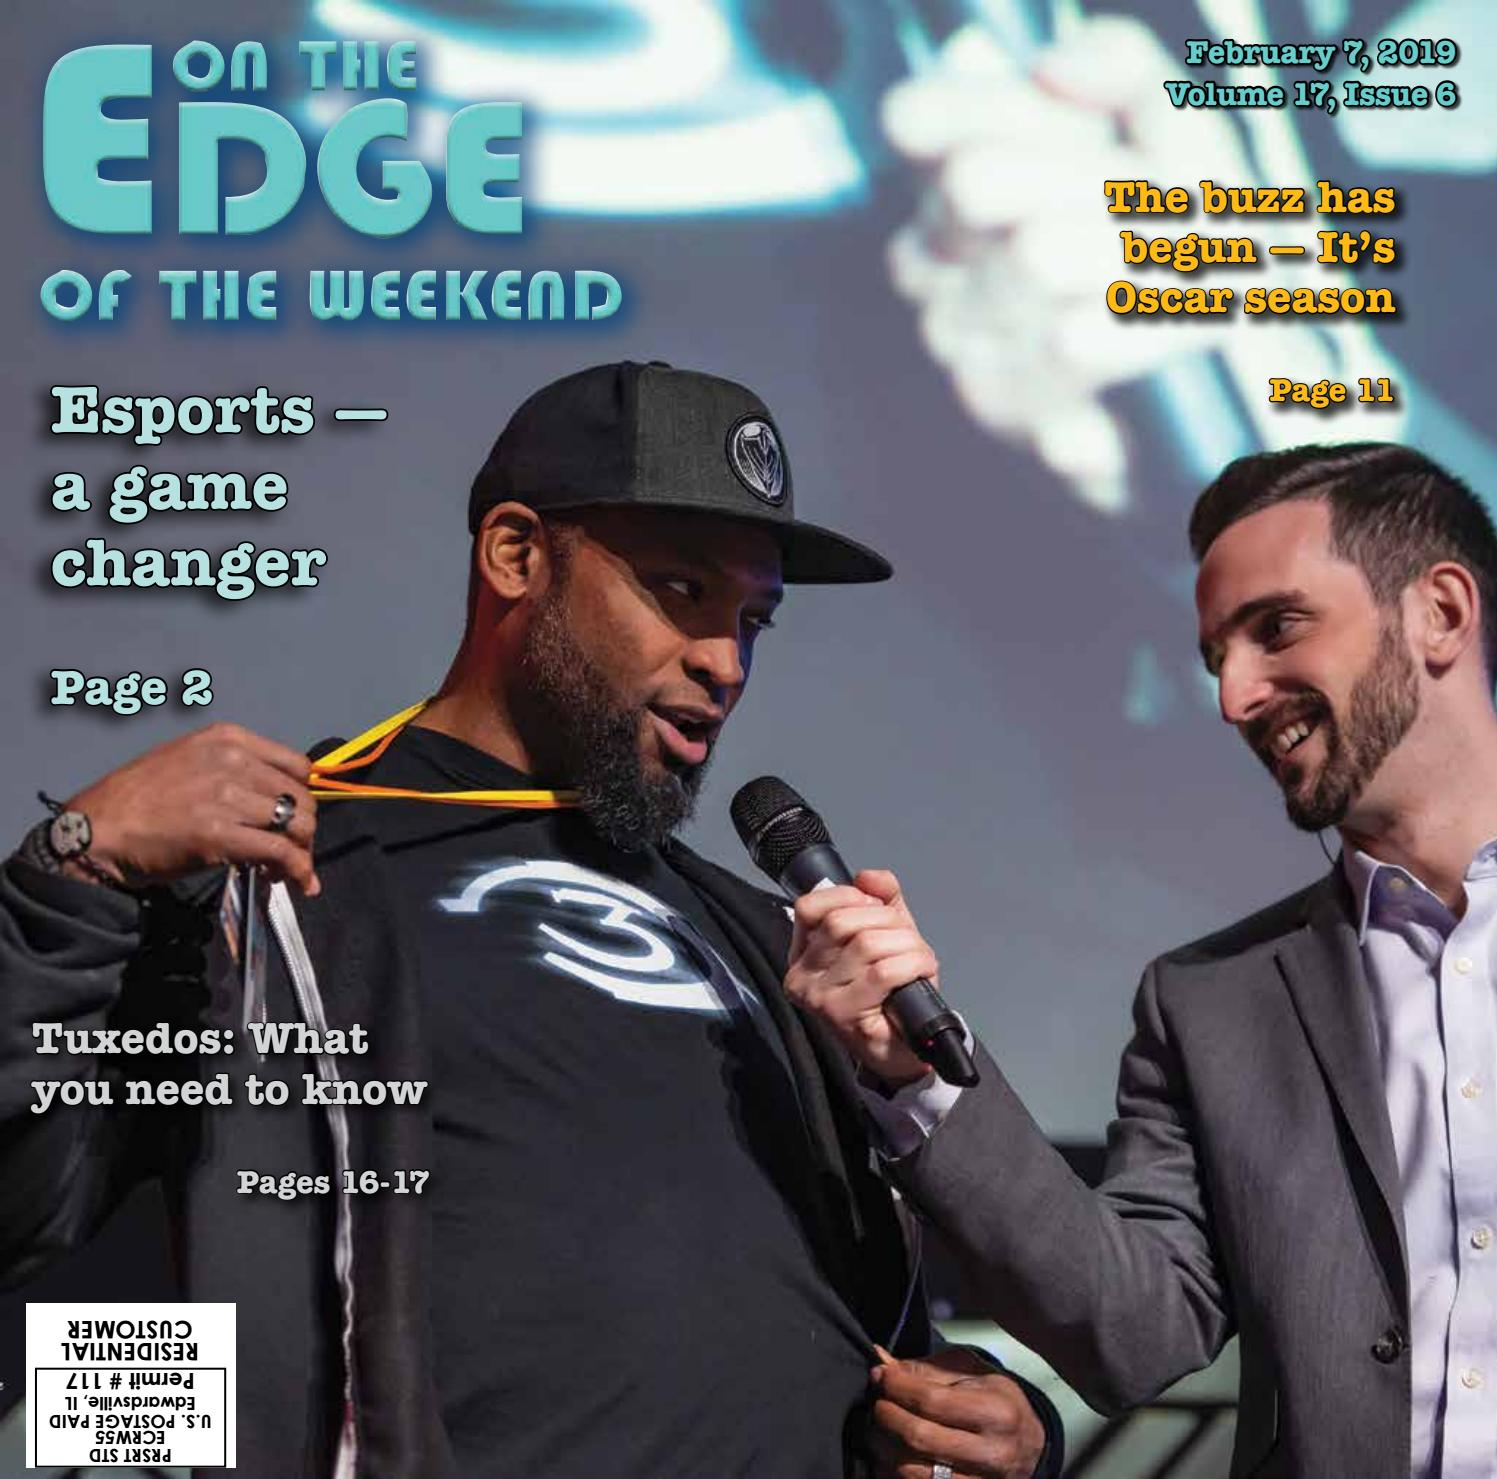 The Edge of the Weekend - Feb  7, 2019 by EDWARDSVILLE